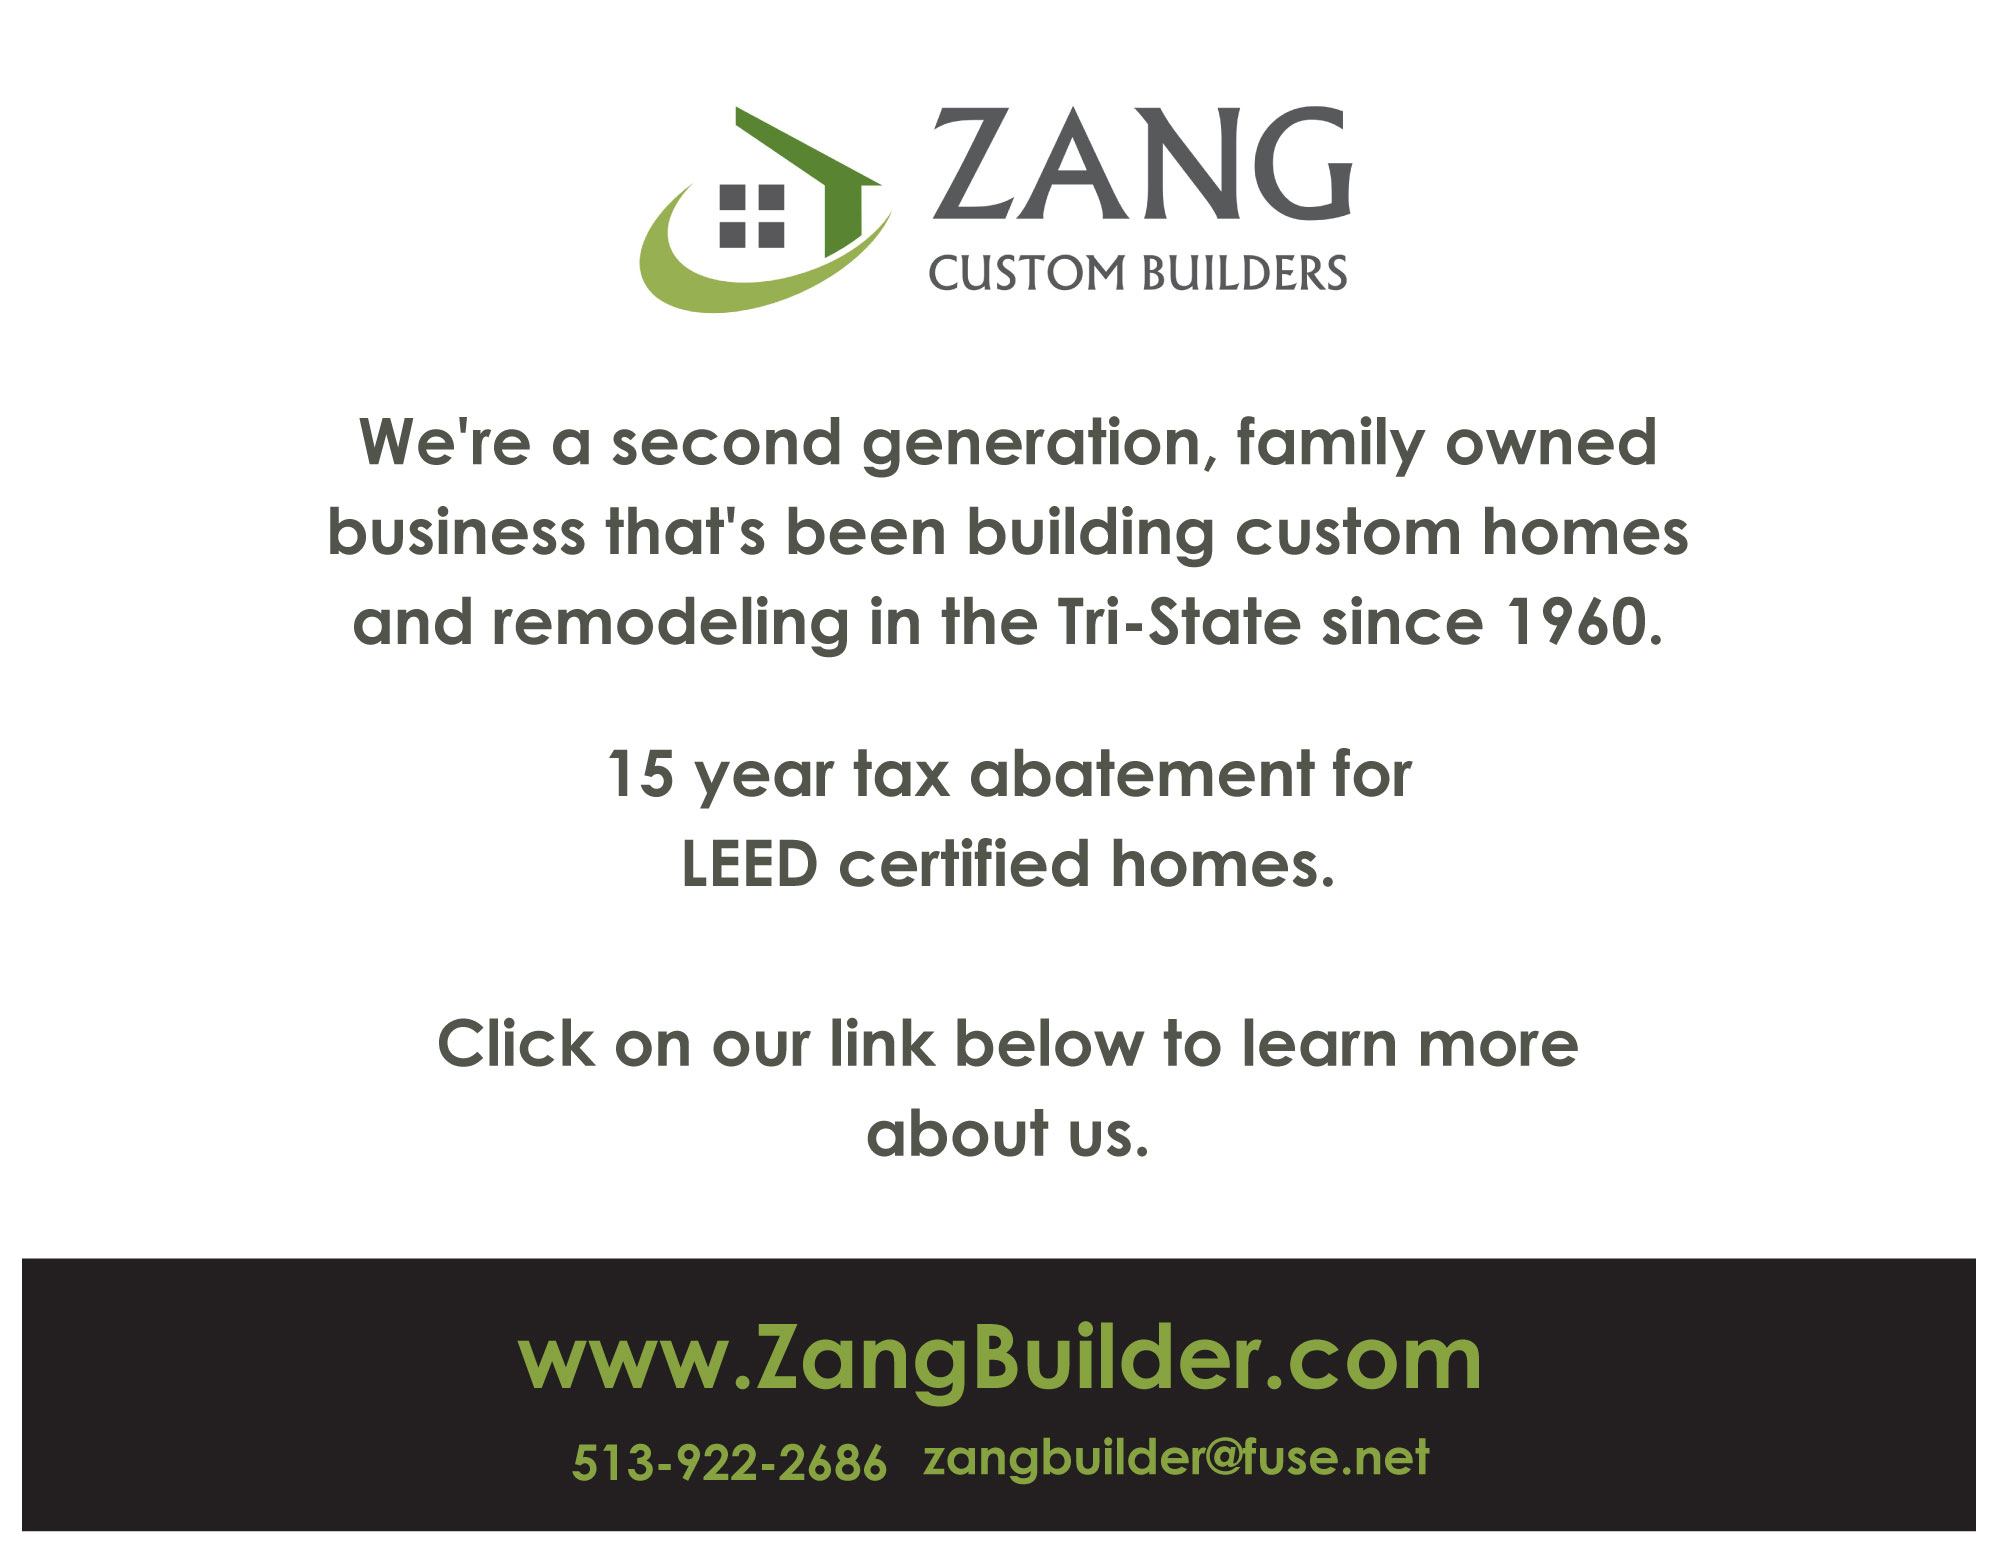 Zang-Custom-Builders.jpg